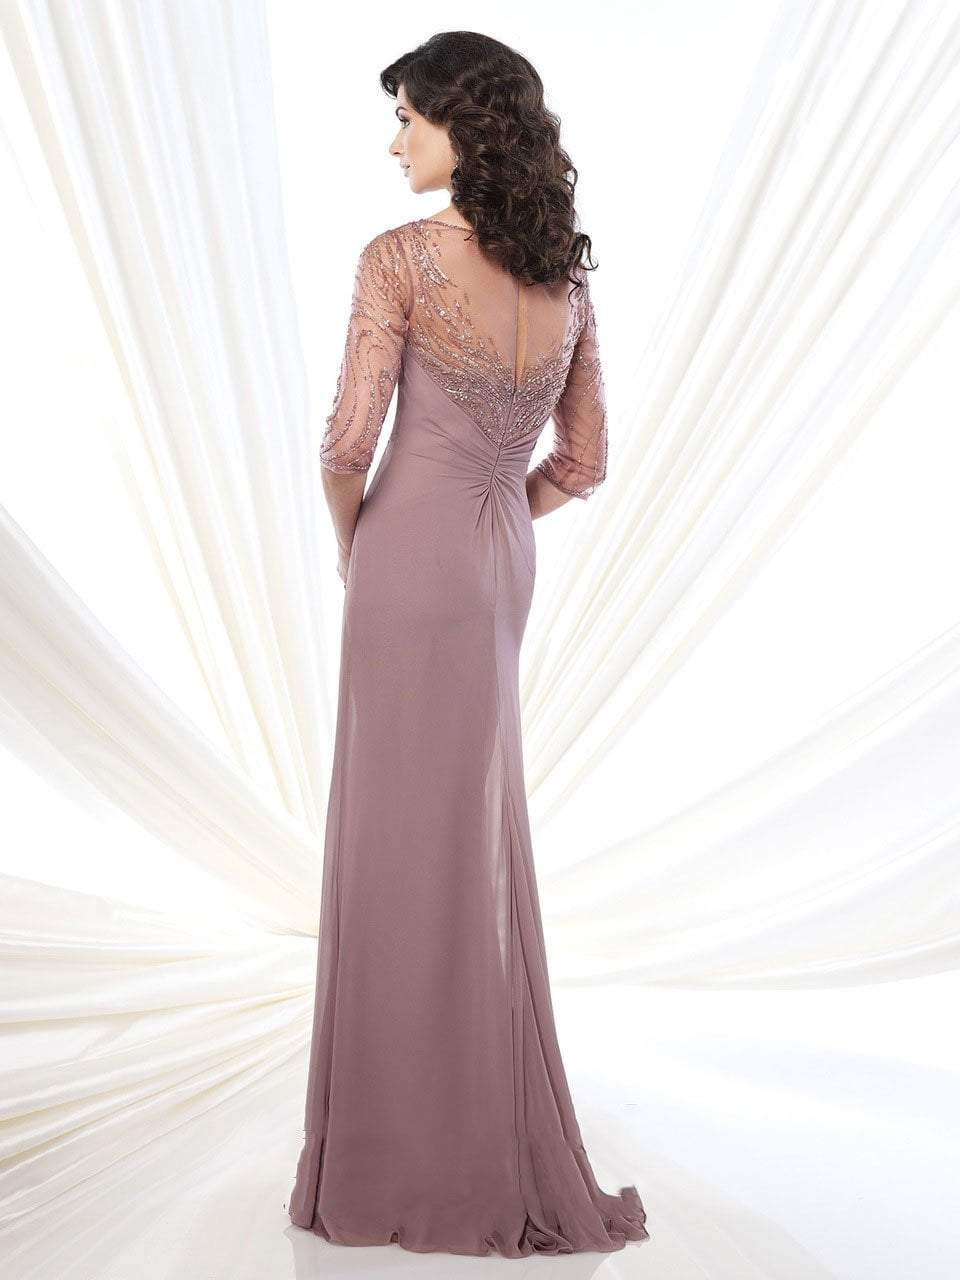 Mon Cheri - 215919SC Knotted Embellished Sheath Evening Gown